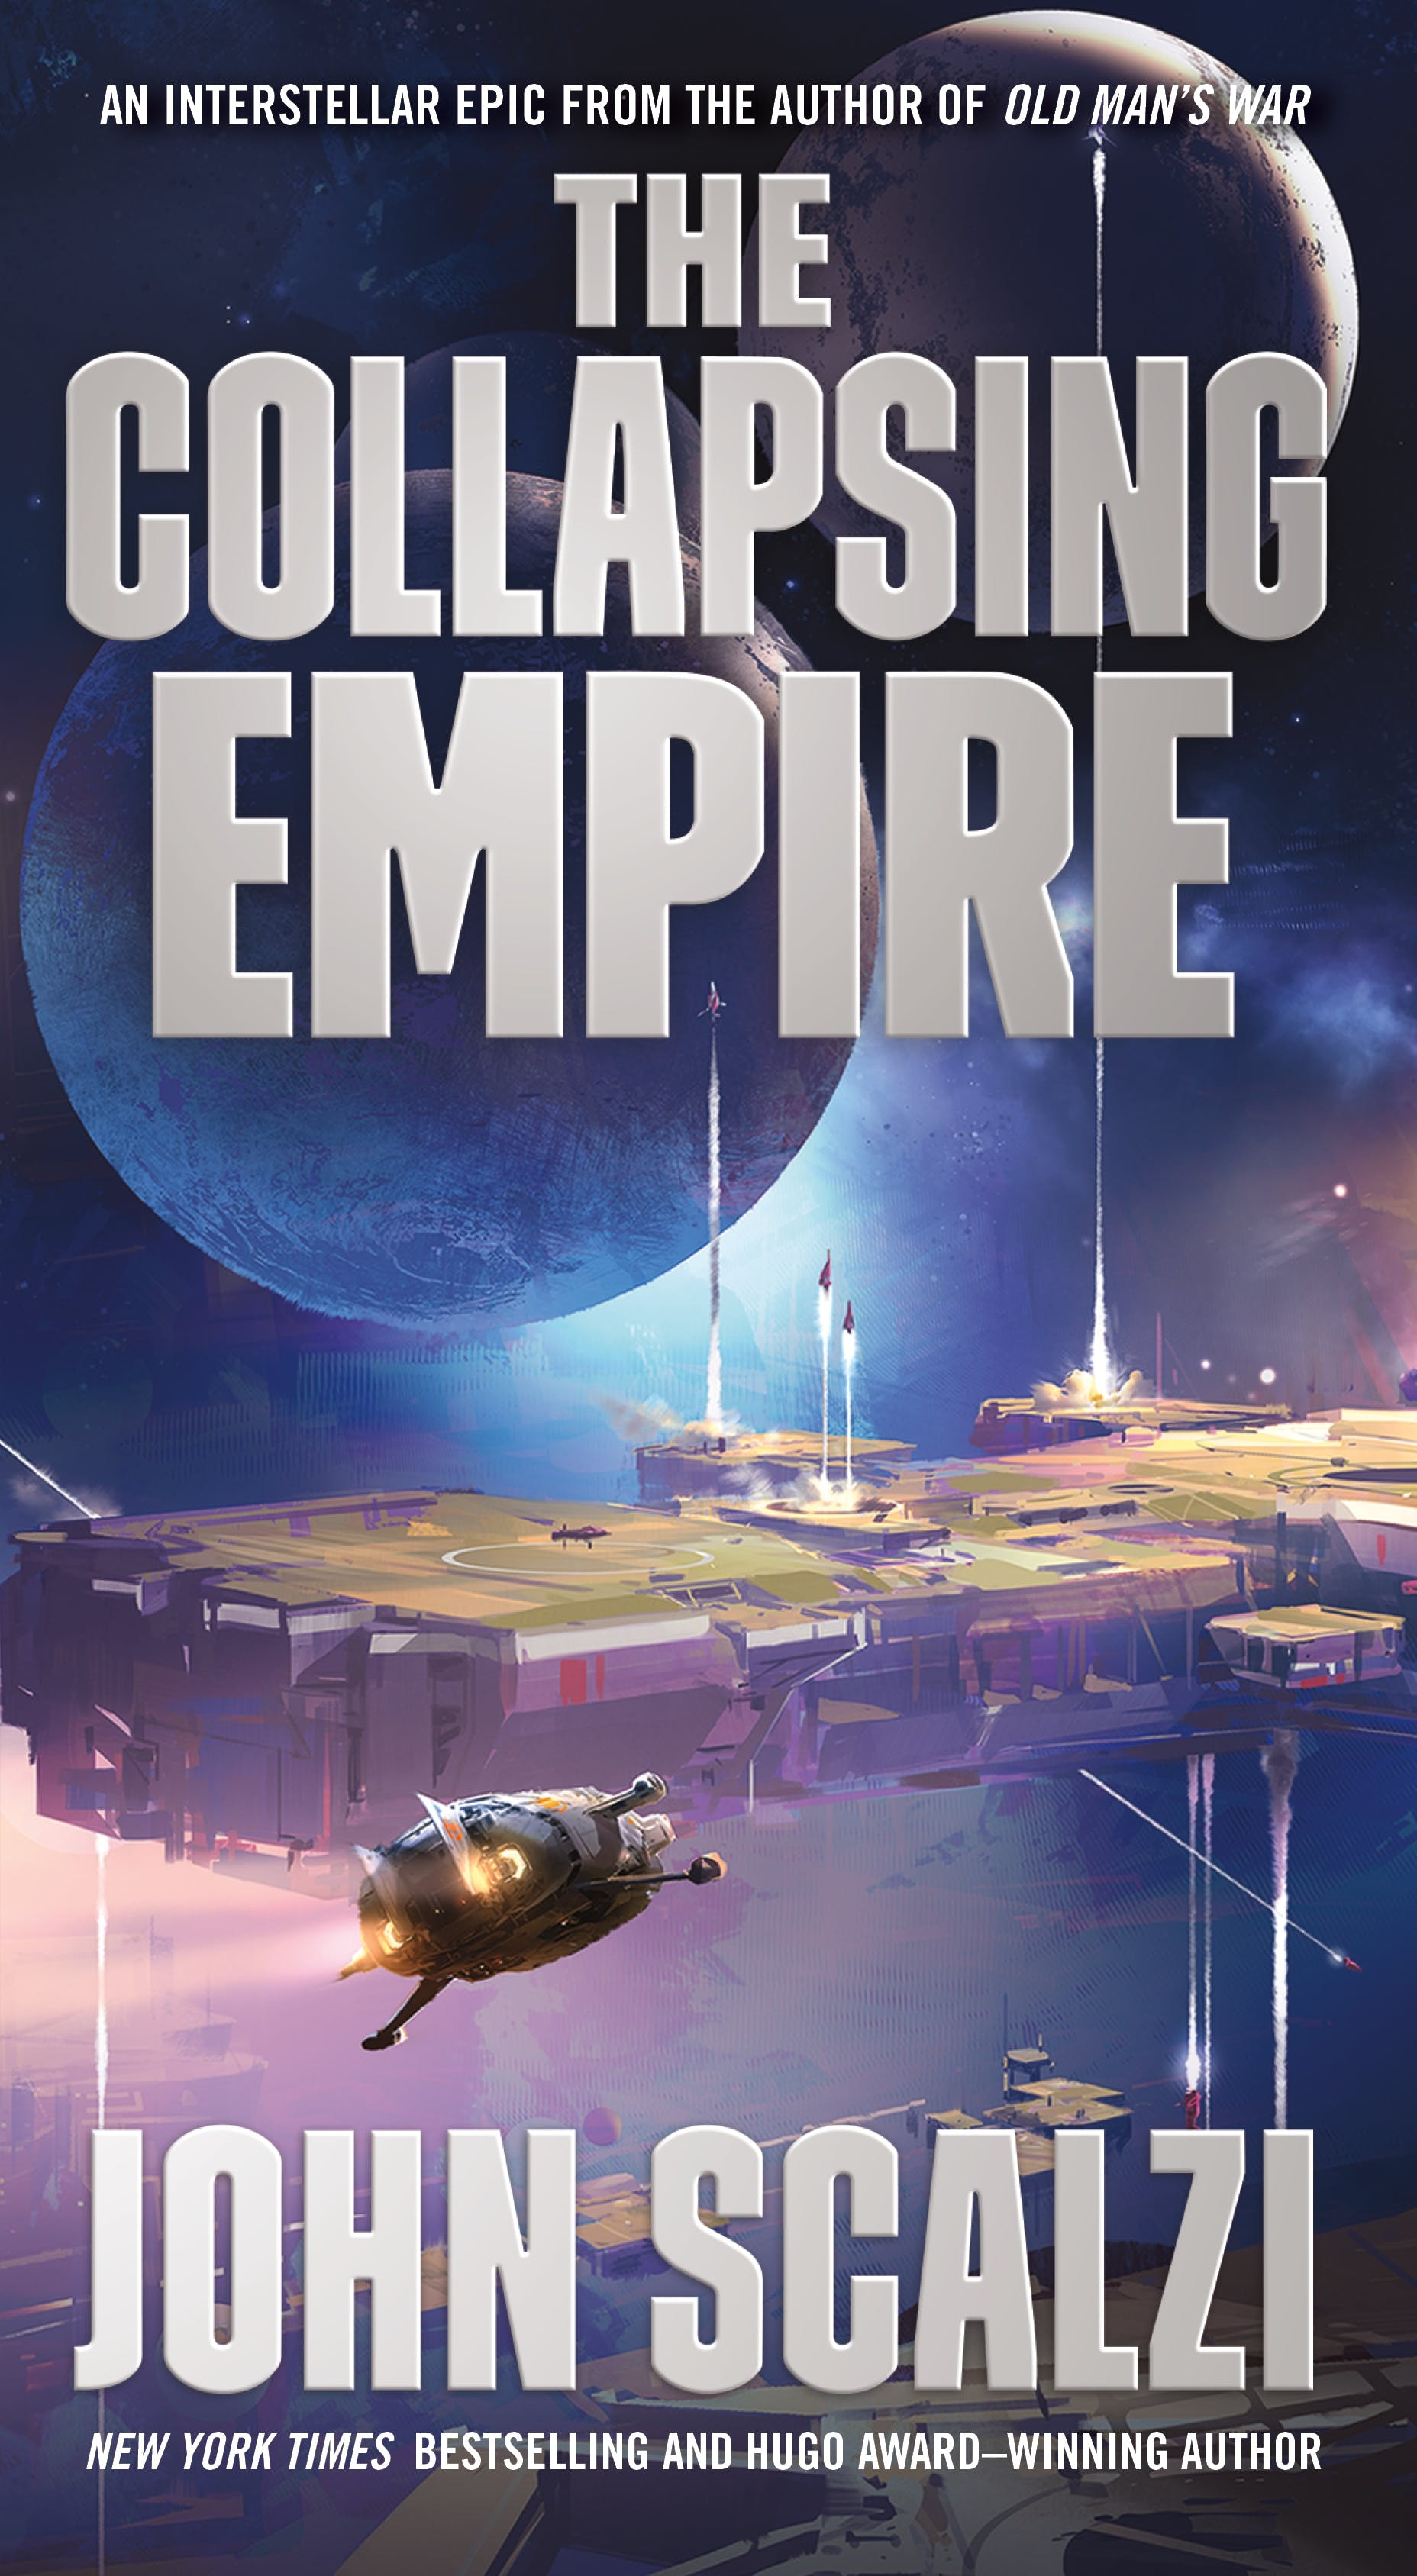 Image of The Collapsing Empire